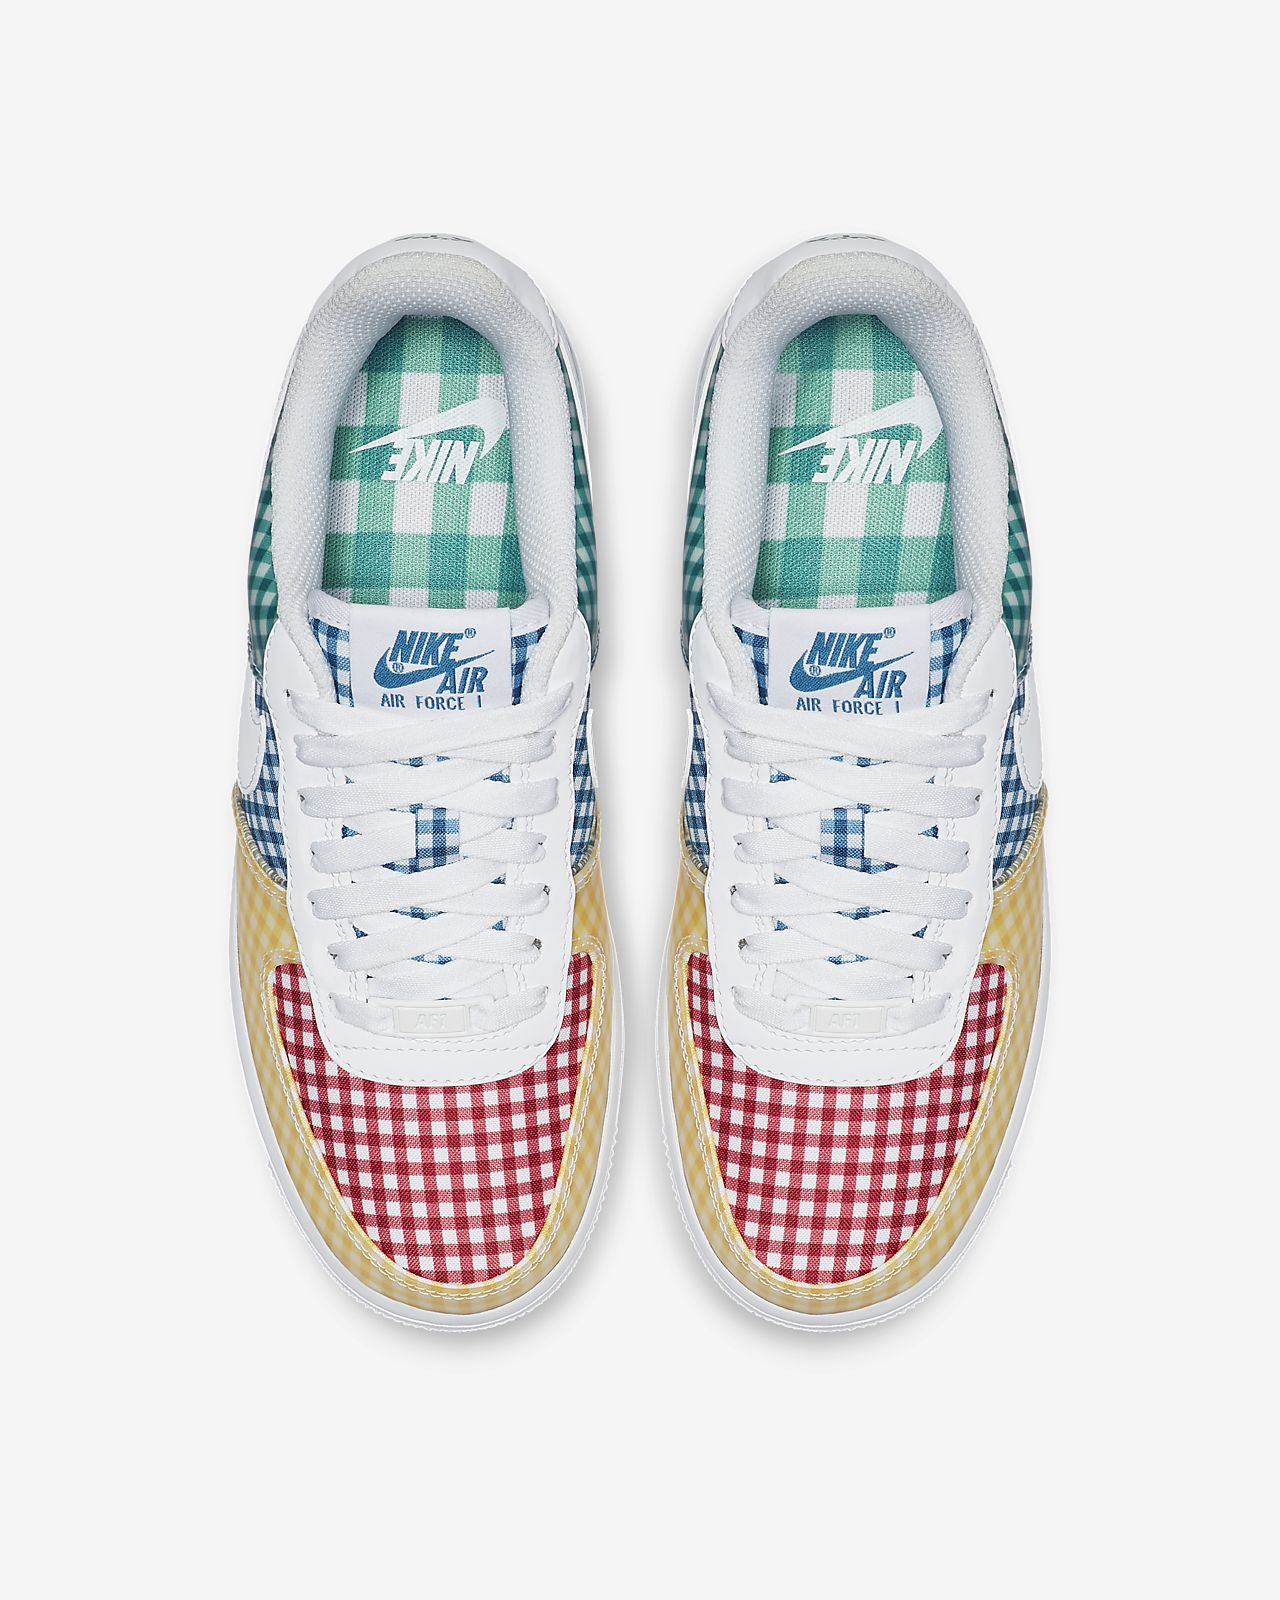 Nike Air Force 1 '07 QS Women's Shoes